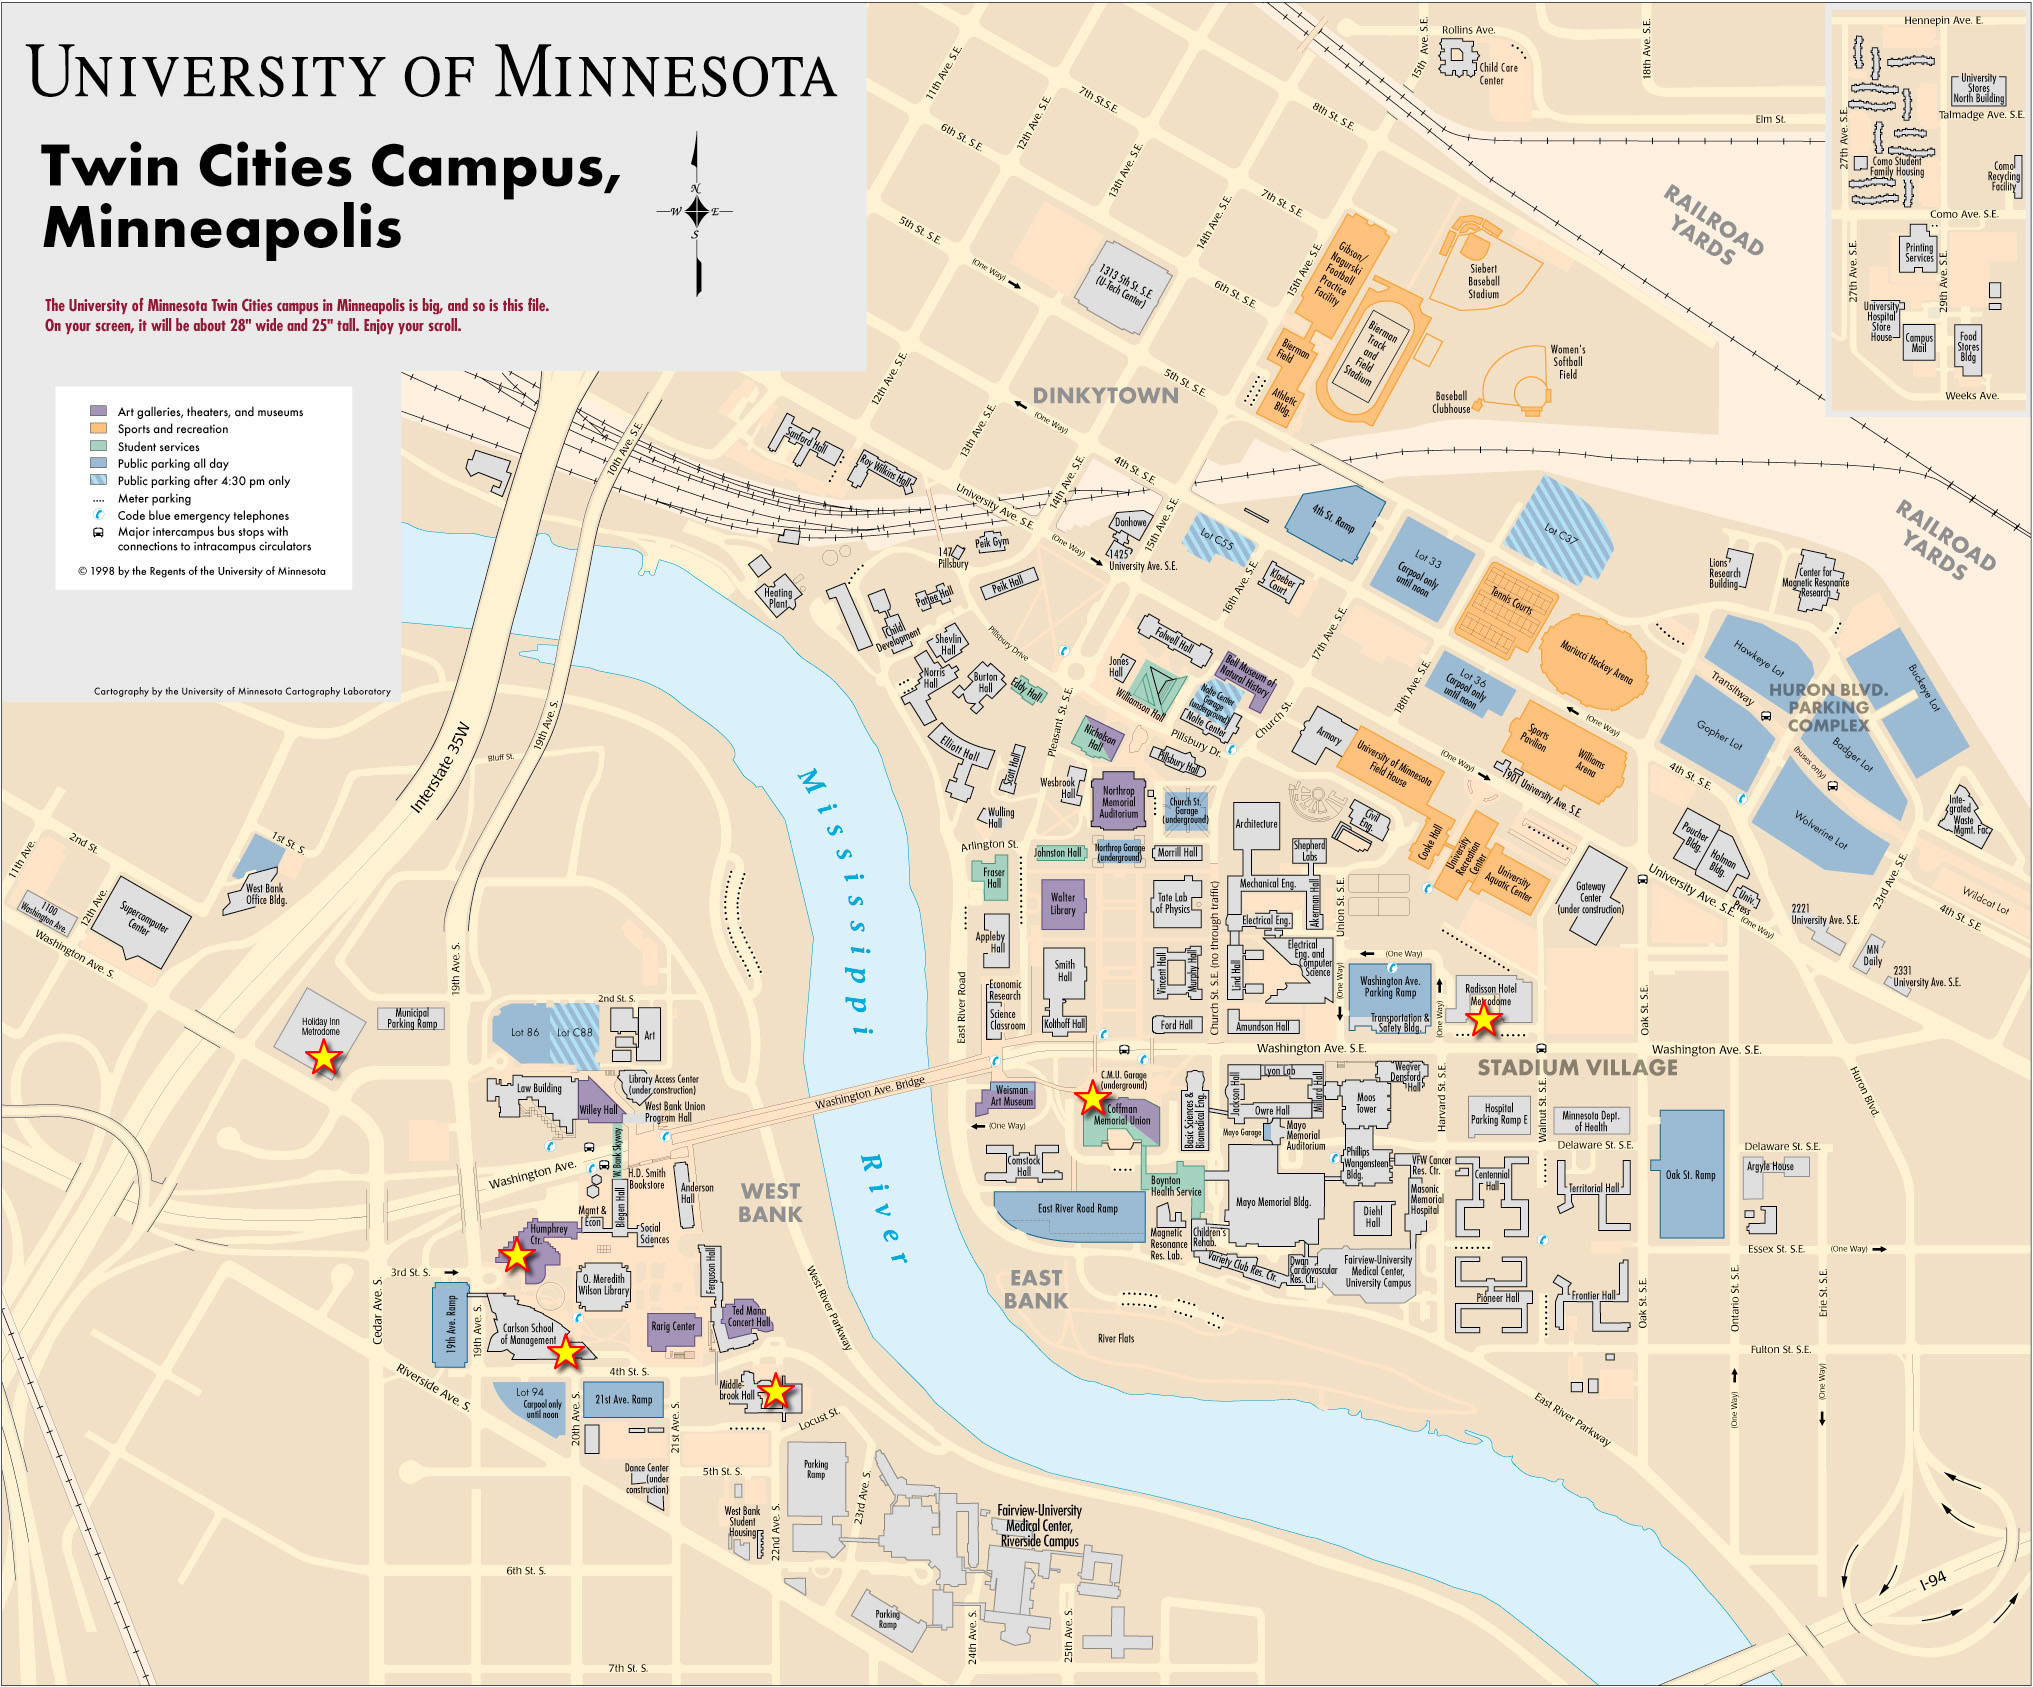 University Of Minnesota Twin Cities Campus Map MinneapolisSaint - Map of minnesota cities